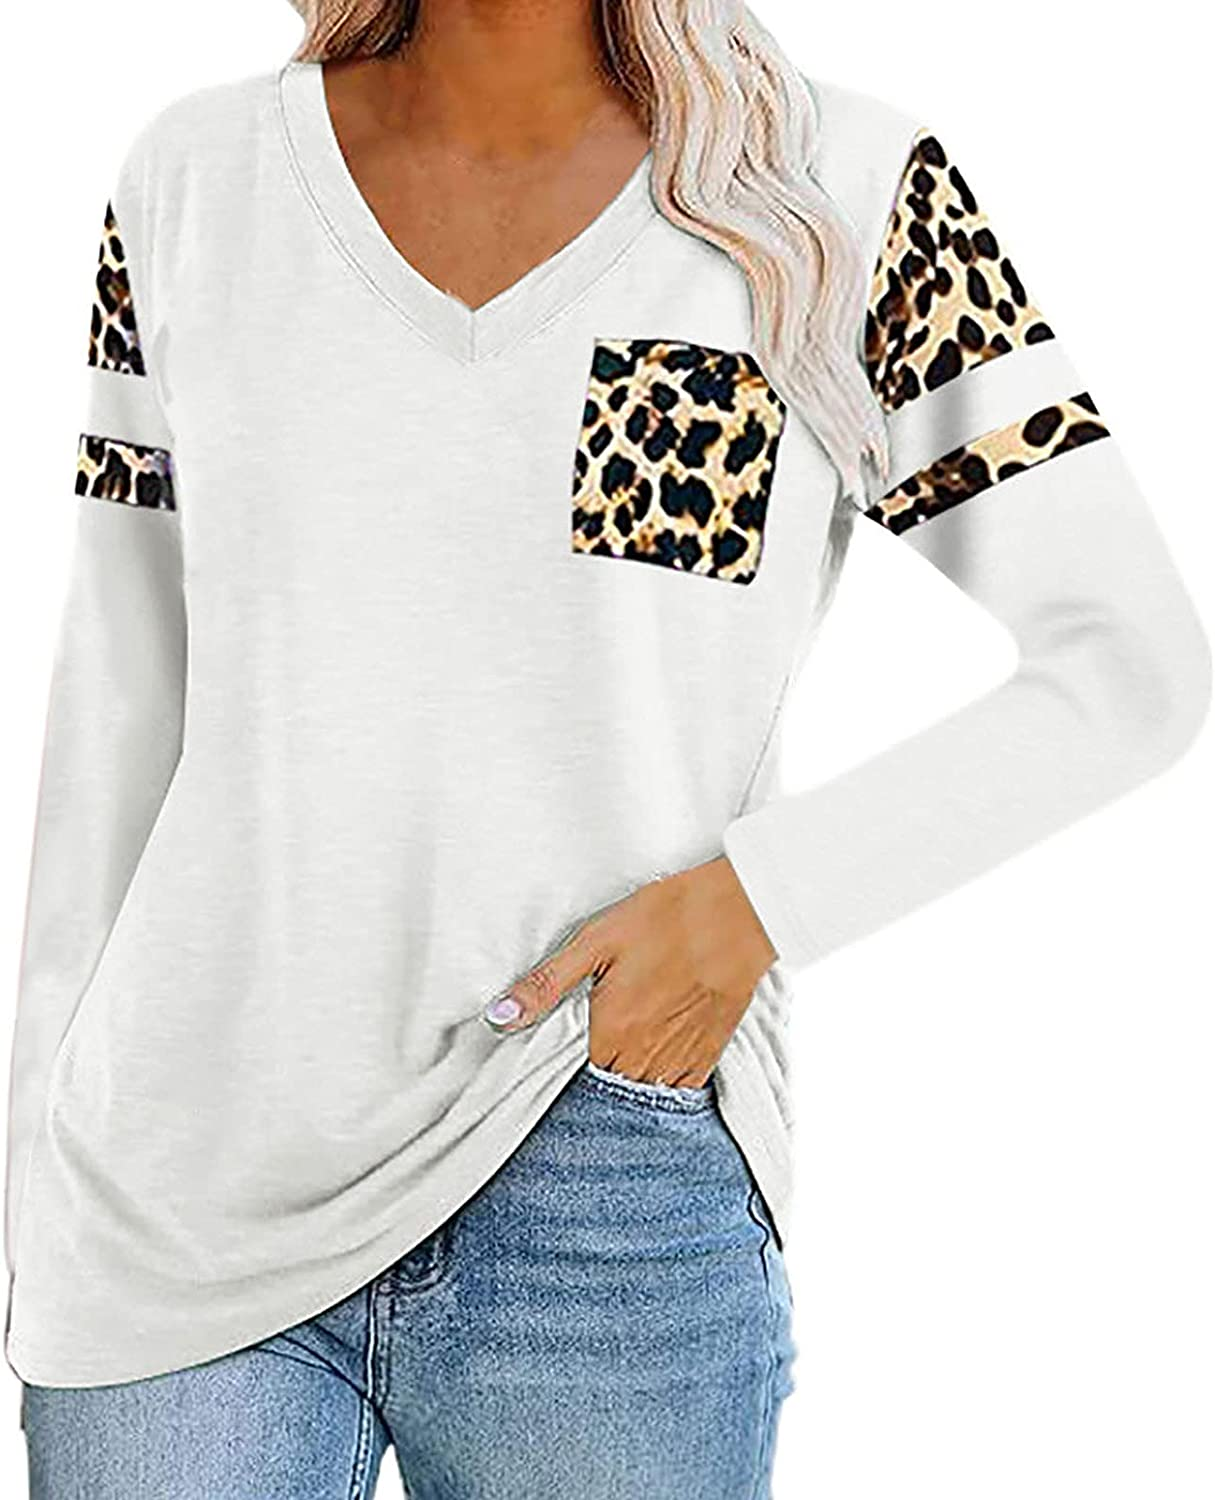 5665 Women's Leopard Print Pullover T-Shirt Casual V-Neck Long Sleeve Tunic Tops Workout Sport Loose Fit Blouse Sweatshirt